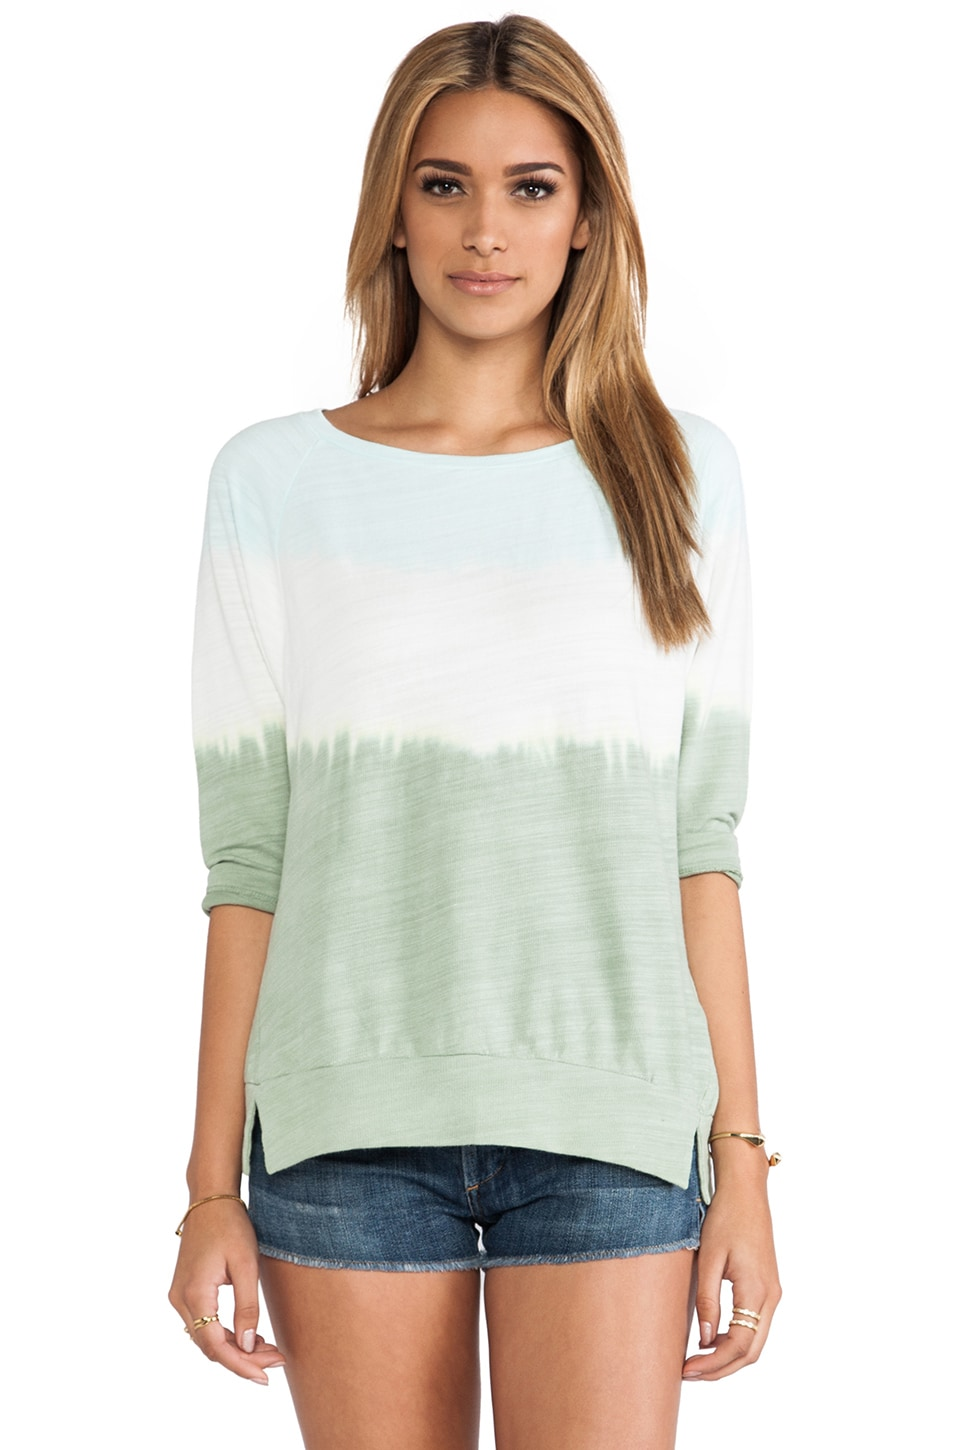 C&C California Dip Dye Sweatshirt in Clearwater